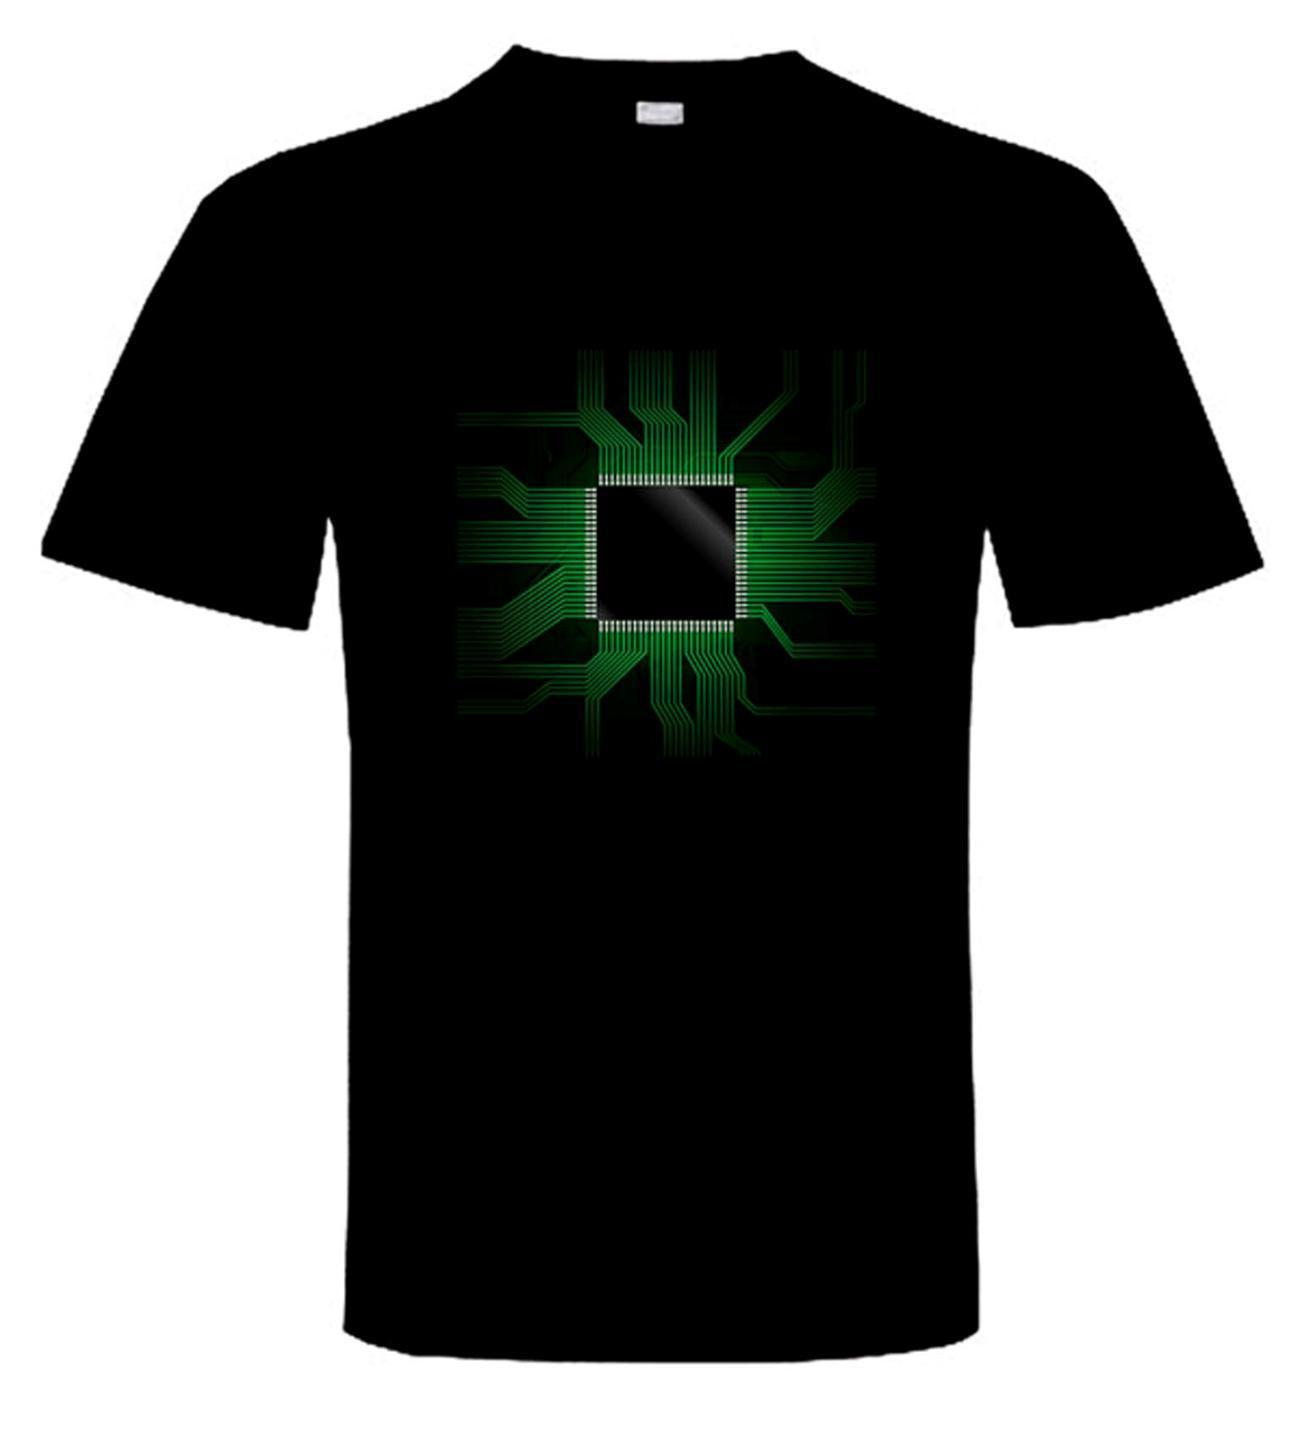 CPU T-SHIRT - Gaming Crowd Gamer Nerd I.T. Computer Techie IT Motherboard Geek New Fashi ...